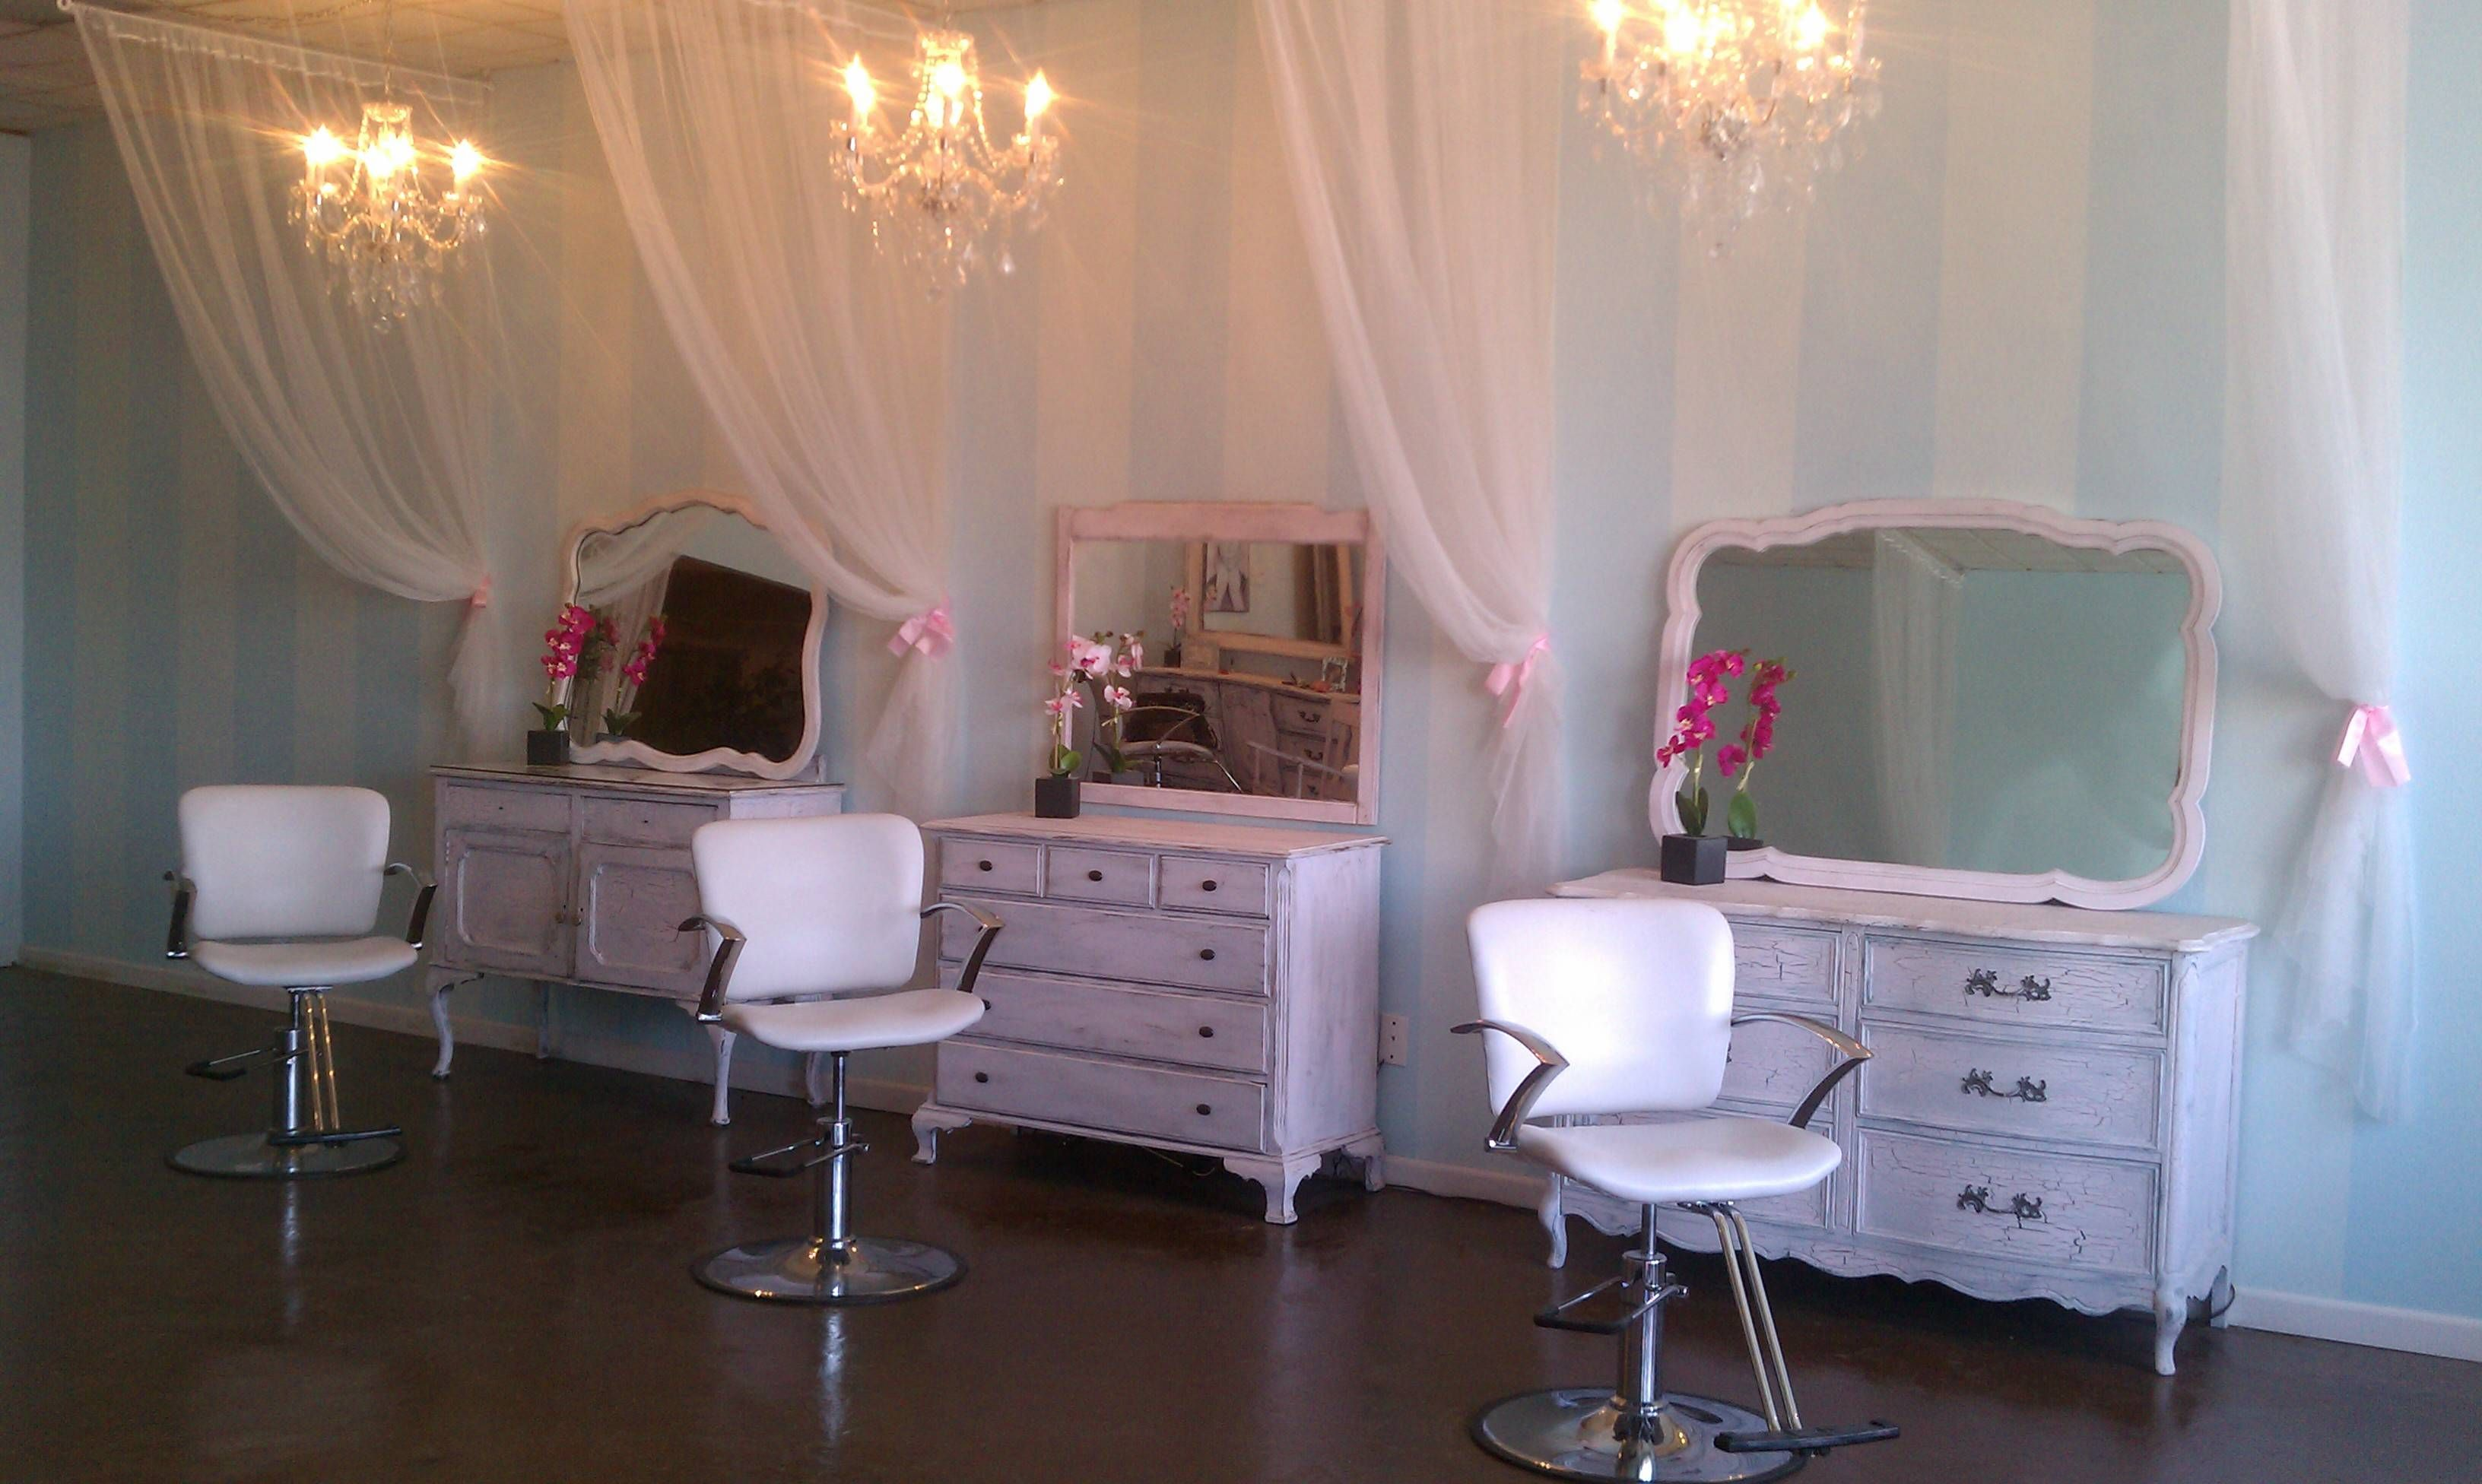 Salon Shabby Chic Using Old Dressers For Stylist Stations Salon Envy In